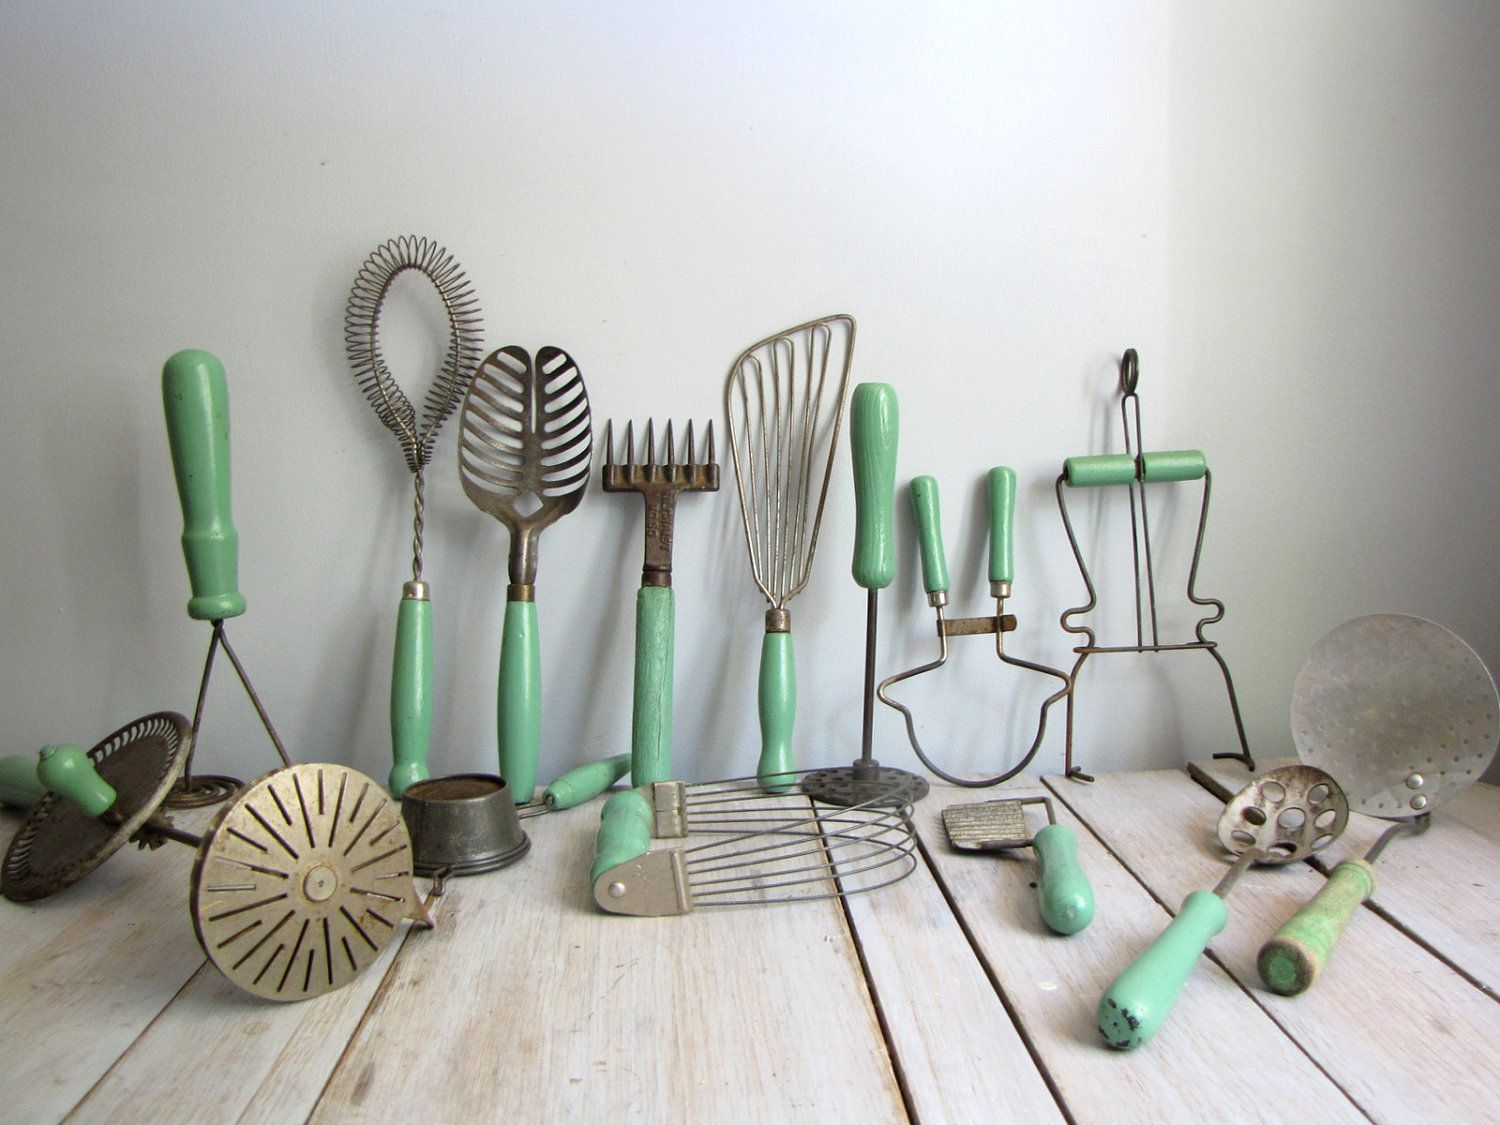 Vintage Küchengeräte Old Kitchen Tools With Lovely Jadite Green Handles